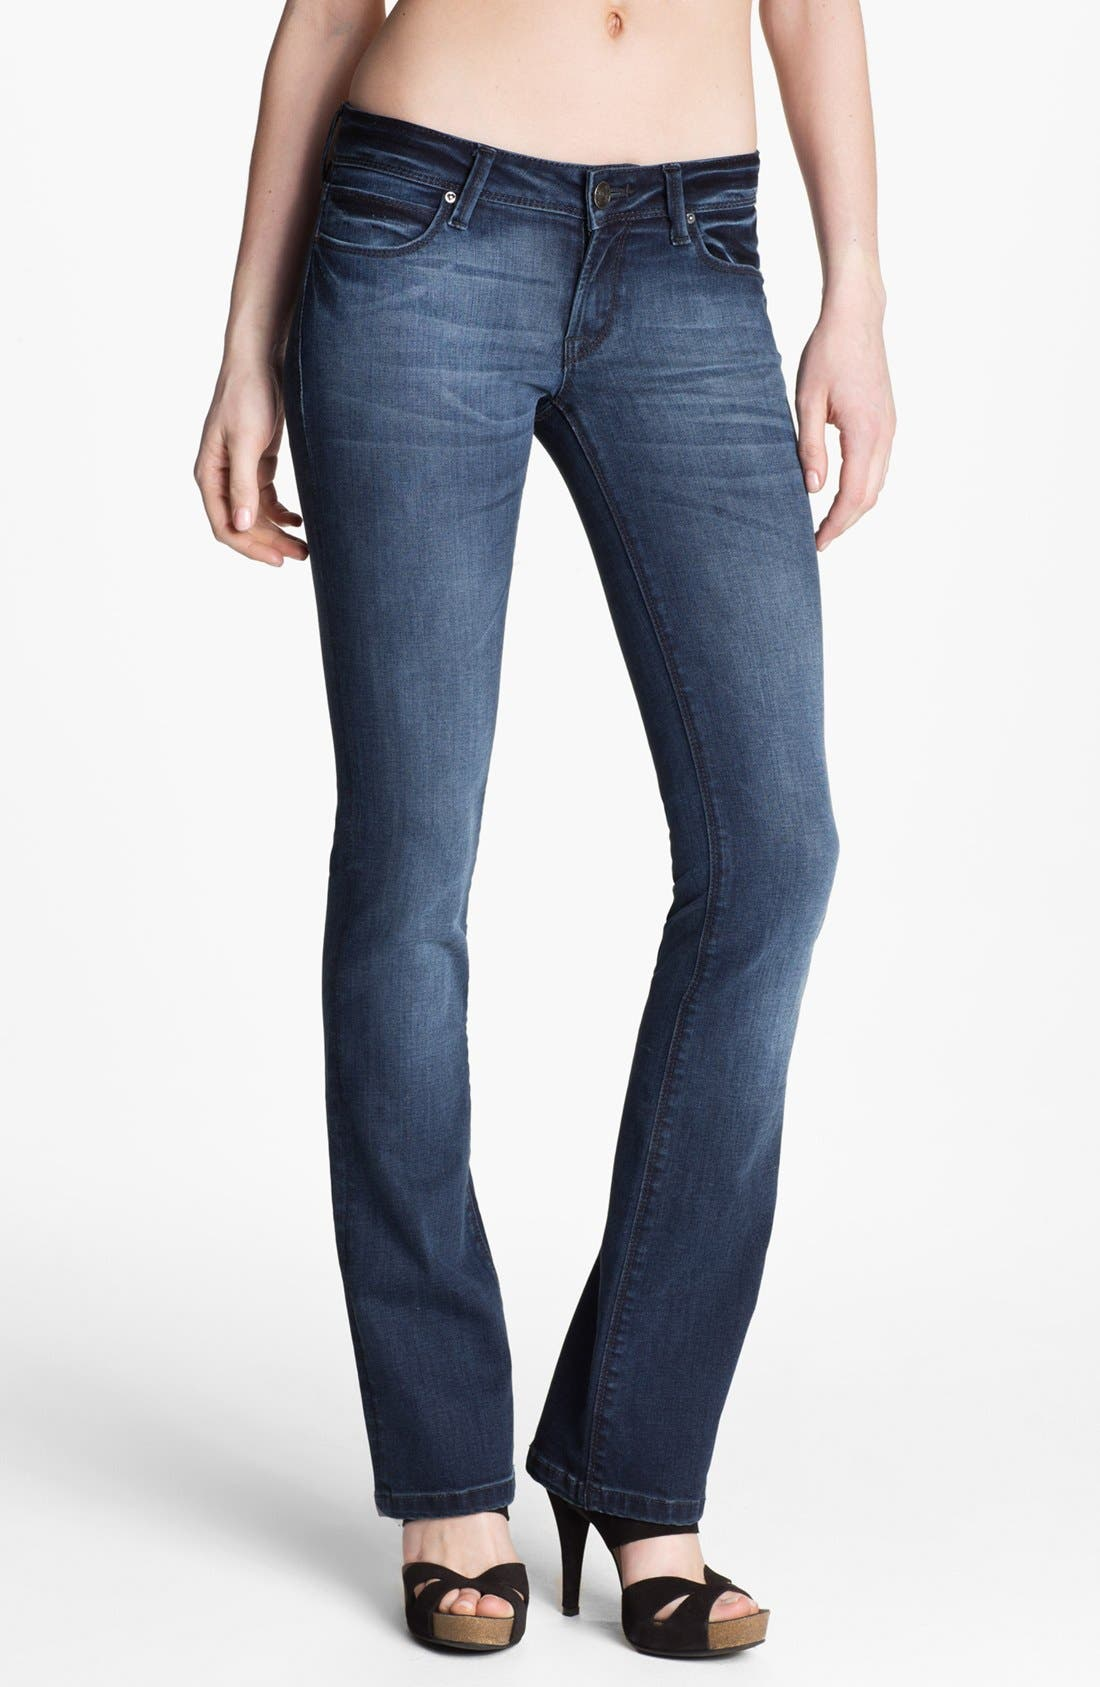 Main Image - DL1961 'Cindy Bell' Slim Bootcut Jeans (Stanton)